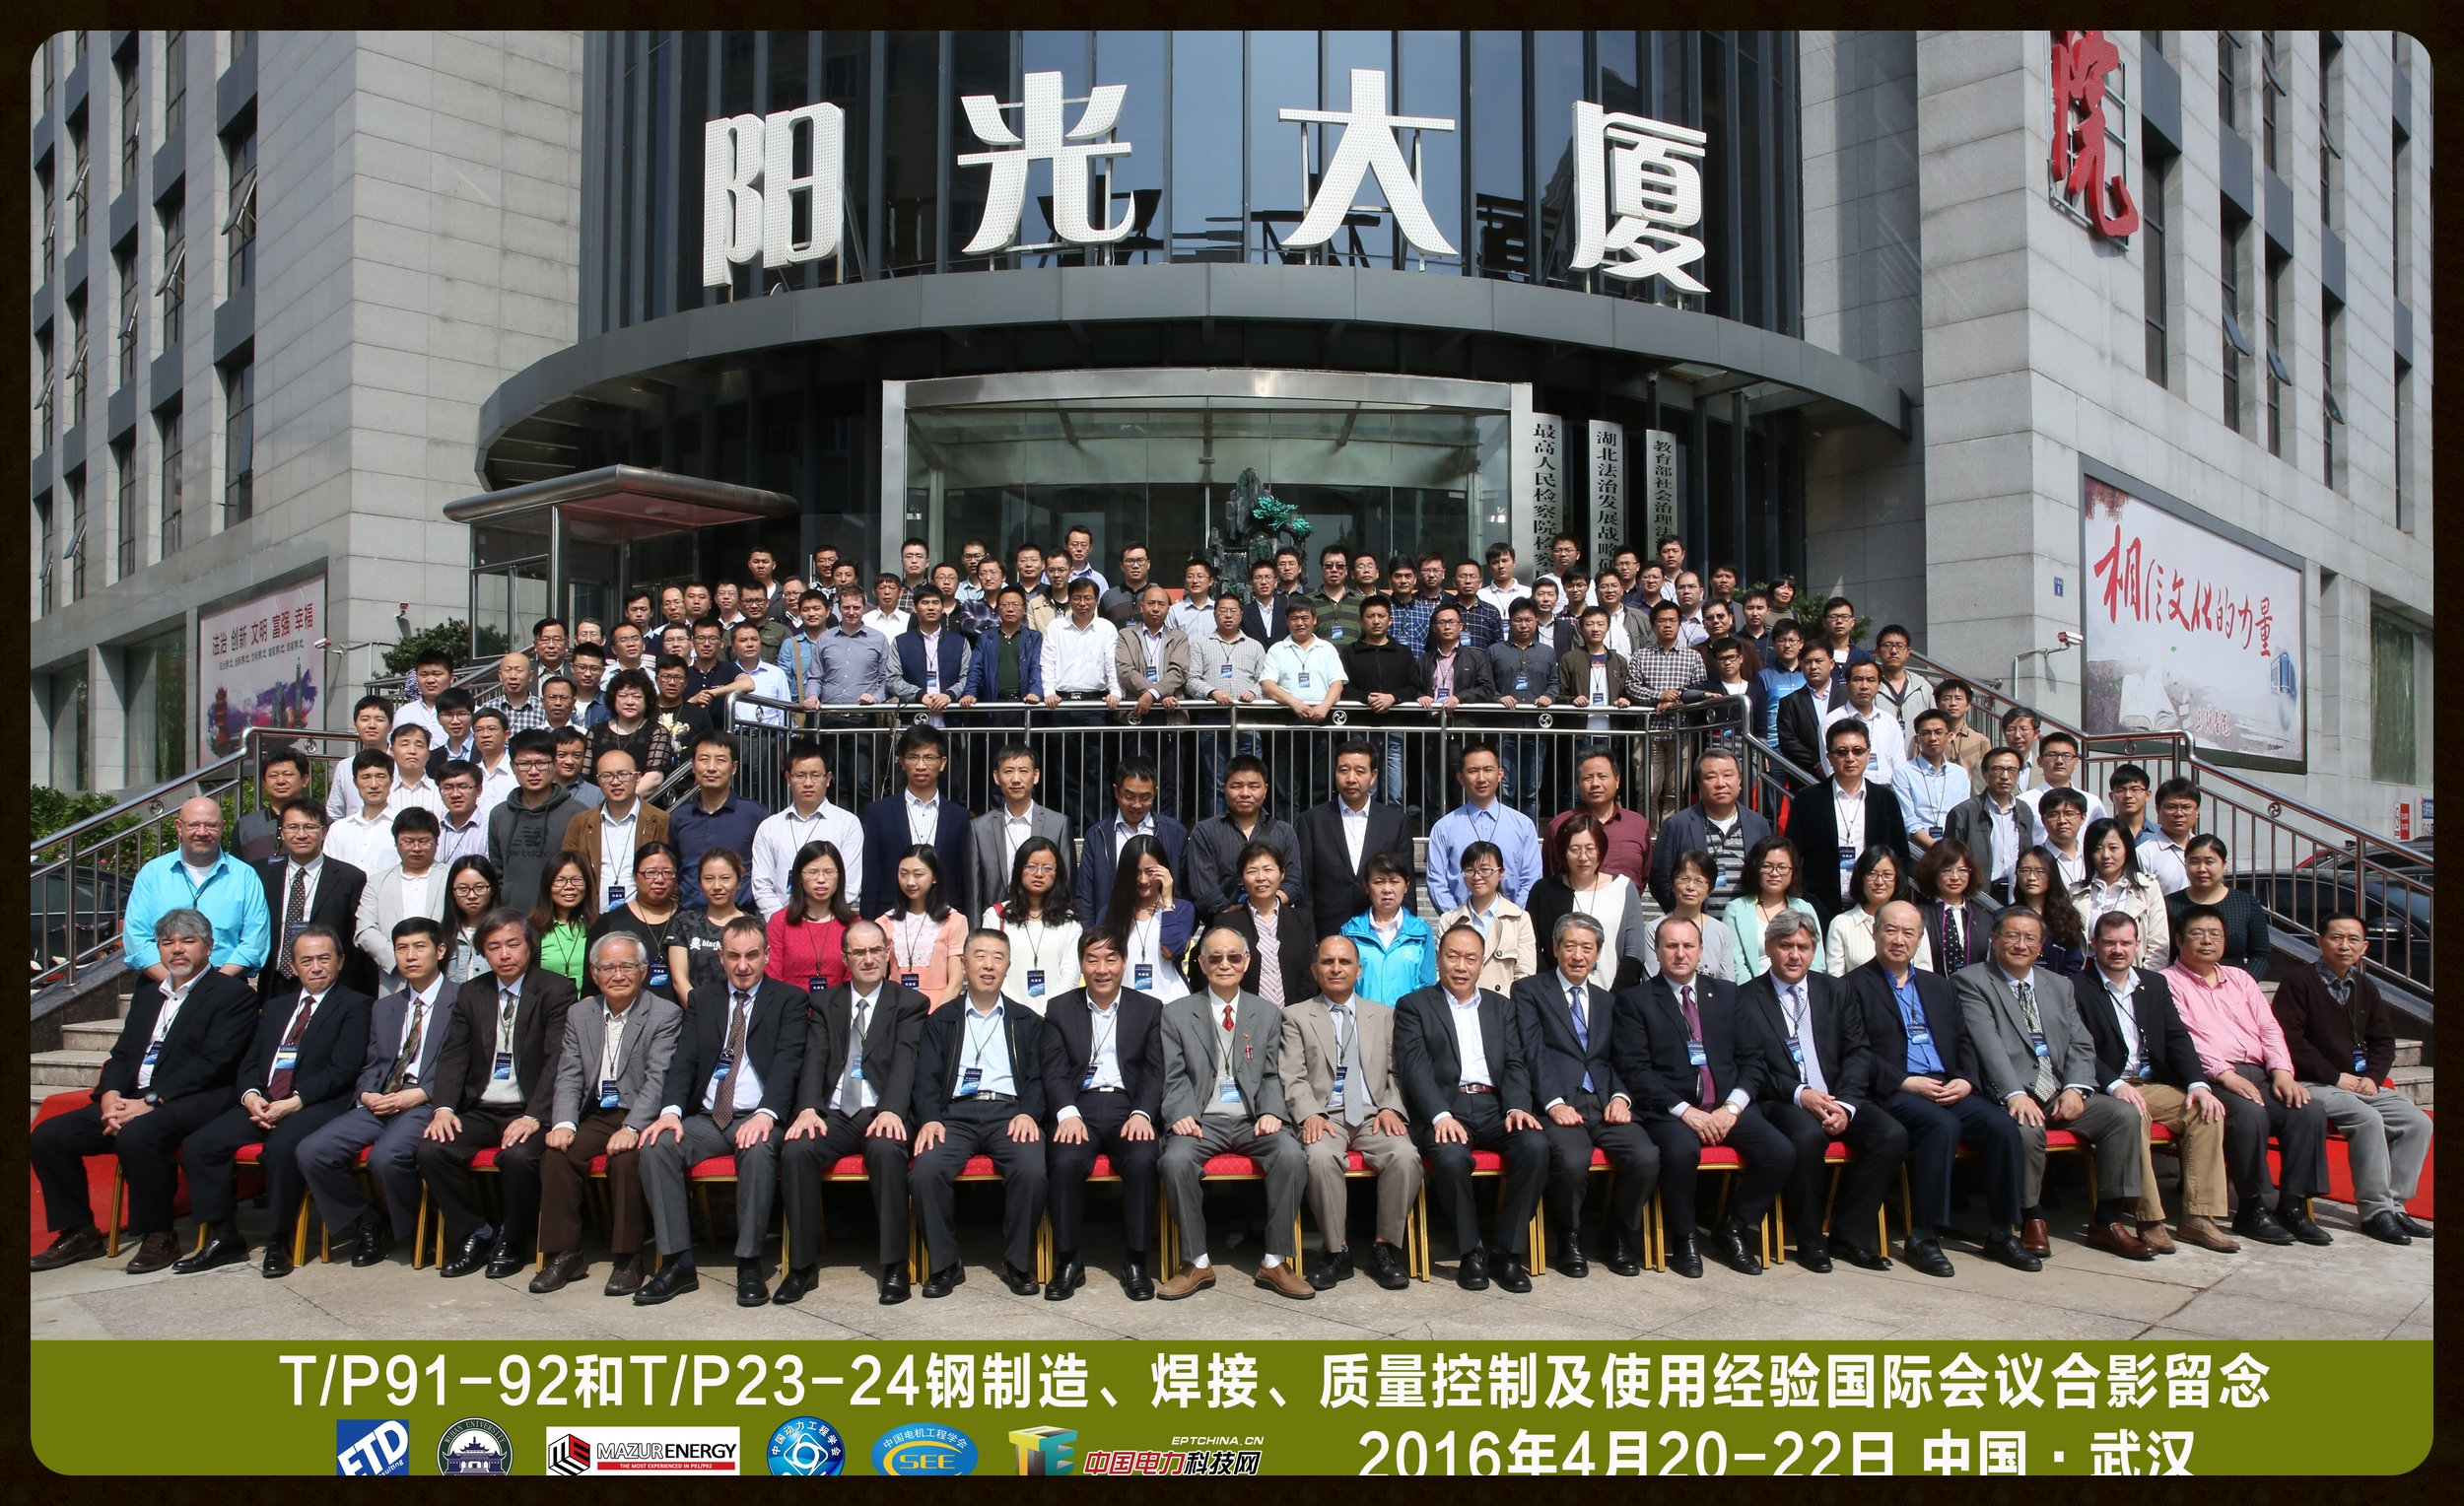 P91, P92, P23 and P24 Steels Conference, Wuhan, China, 20 - 22 April 2016.